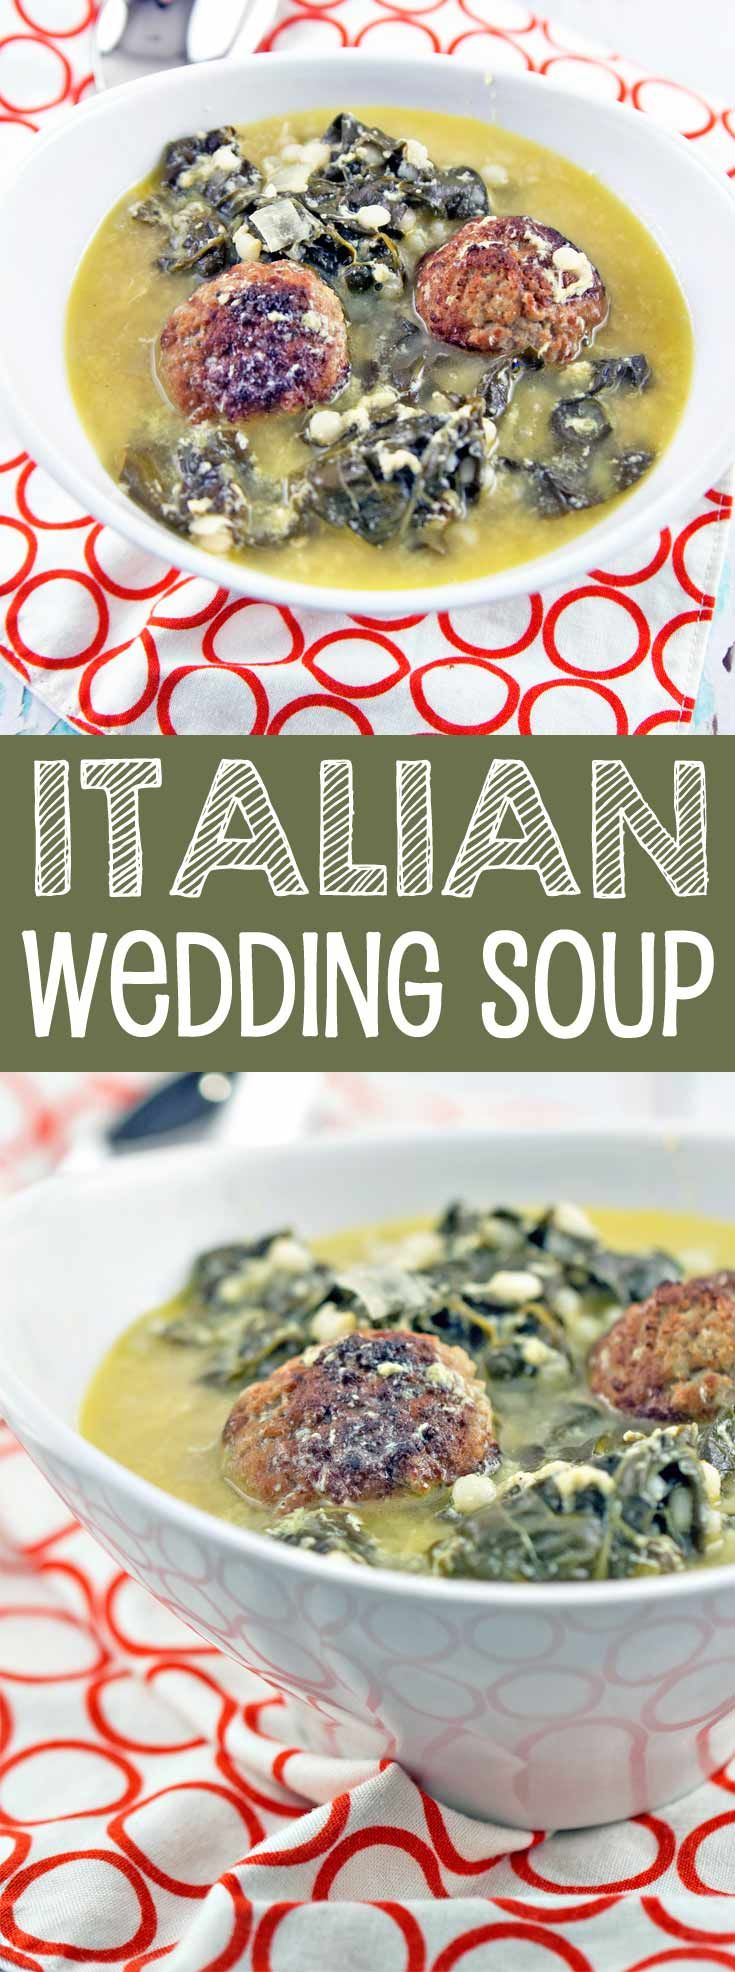 Italian Wedding Soup: a delicious, comforting favorite, made with things already found in your freezer and pantry. {Bunsen Burner Bakery} via @bnsnbrnrbakery